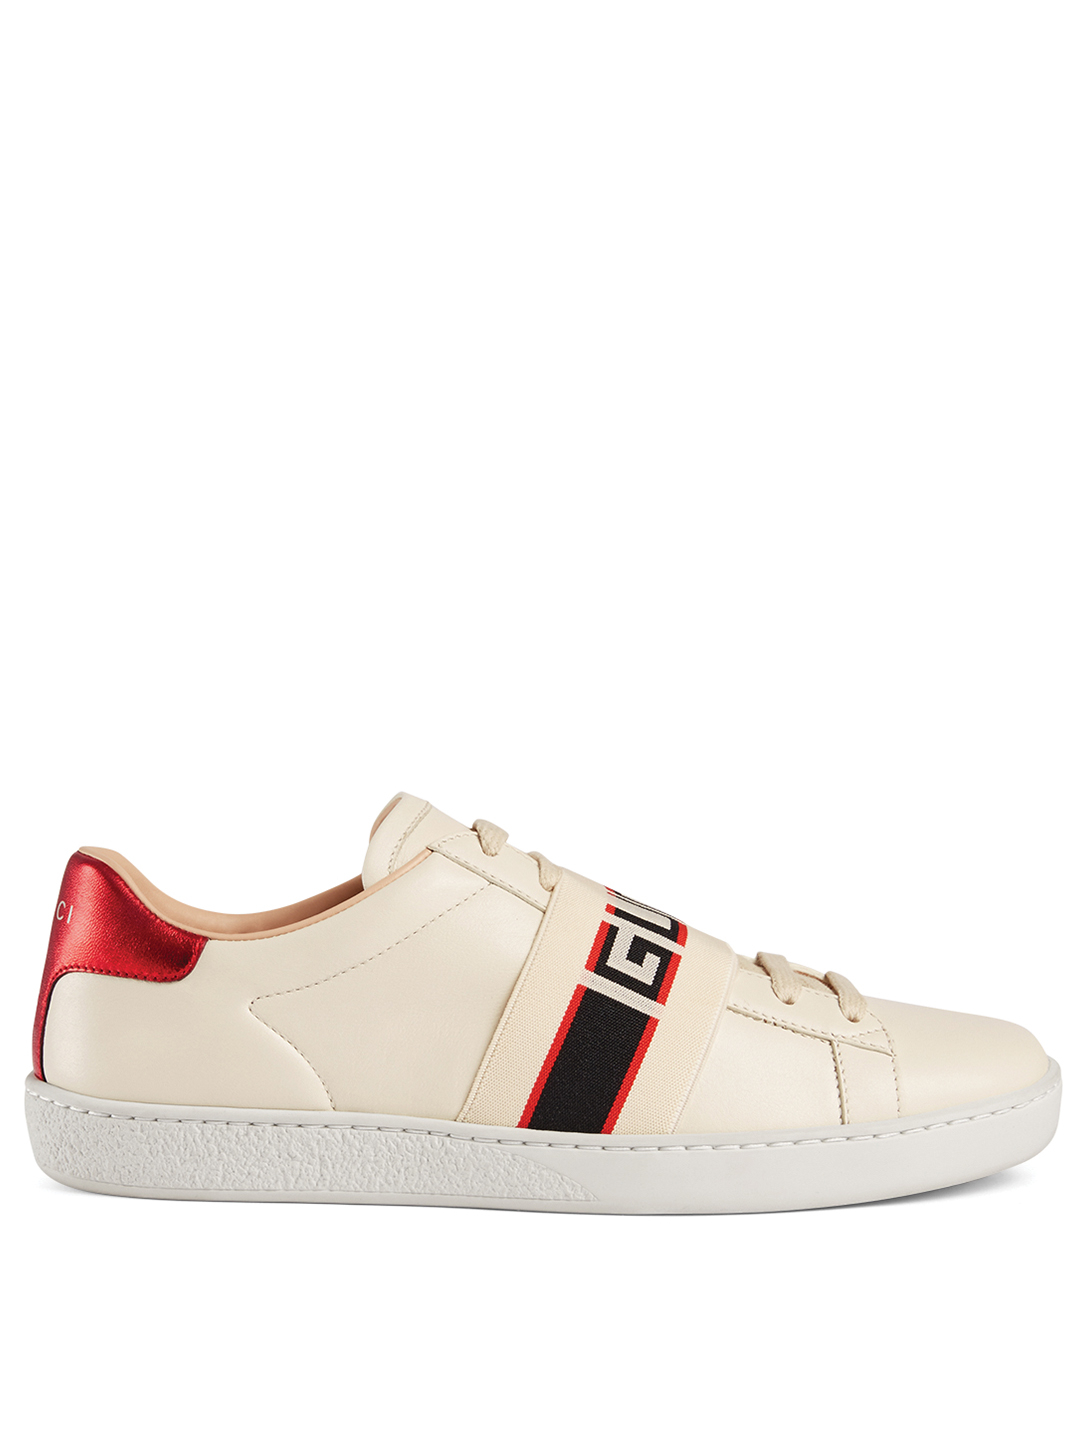 34c93b6064e GUCCI New Ace Leather Sneakers With Logo Strap Women s White ...